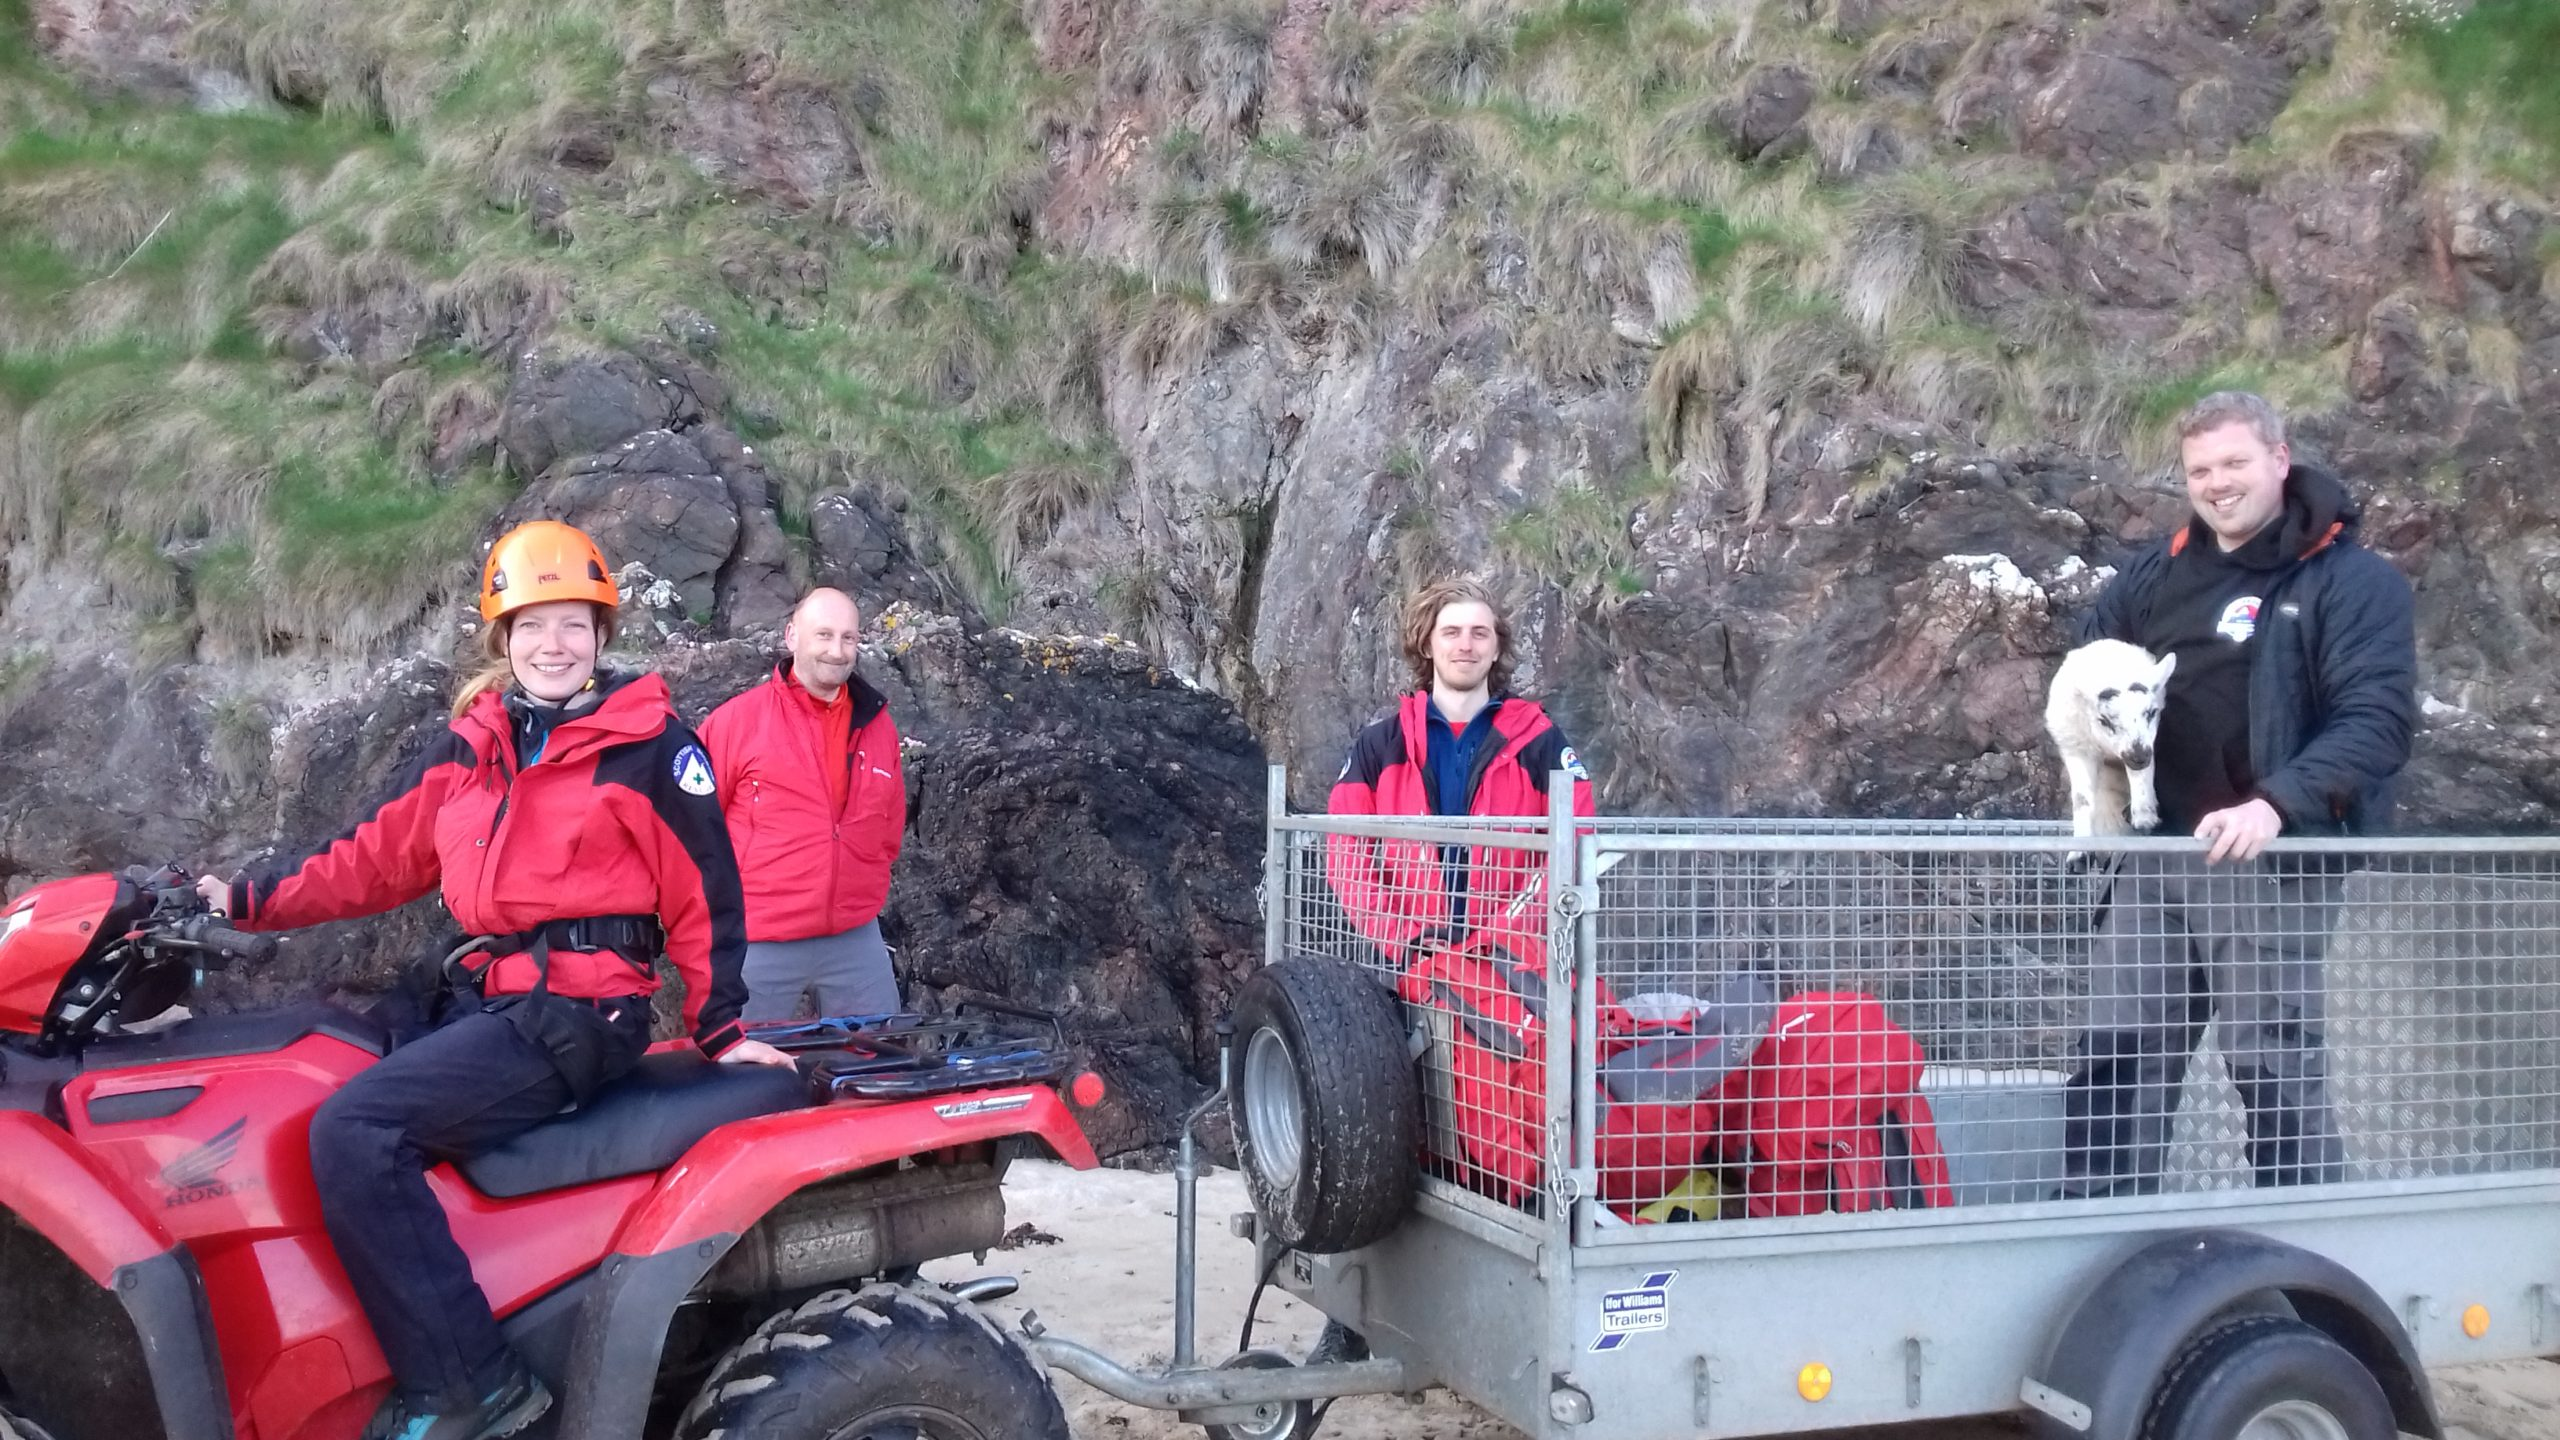 Hebrides Mountain Rescue Team assisted in the operation to rescue the injured lamb